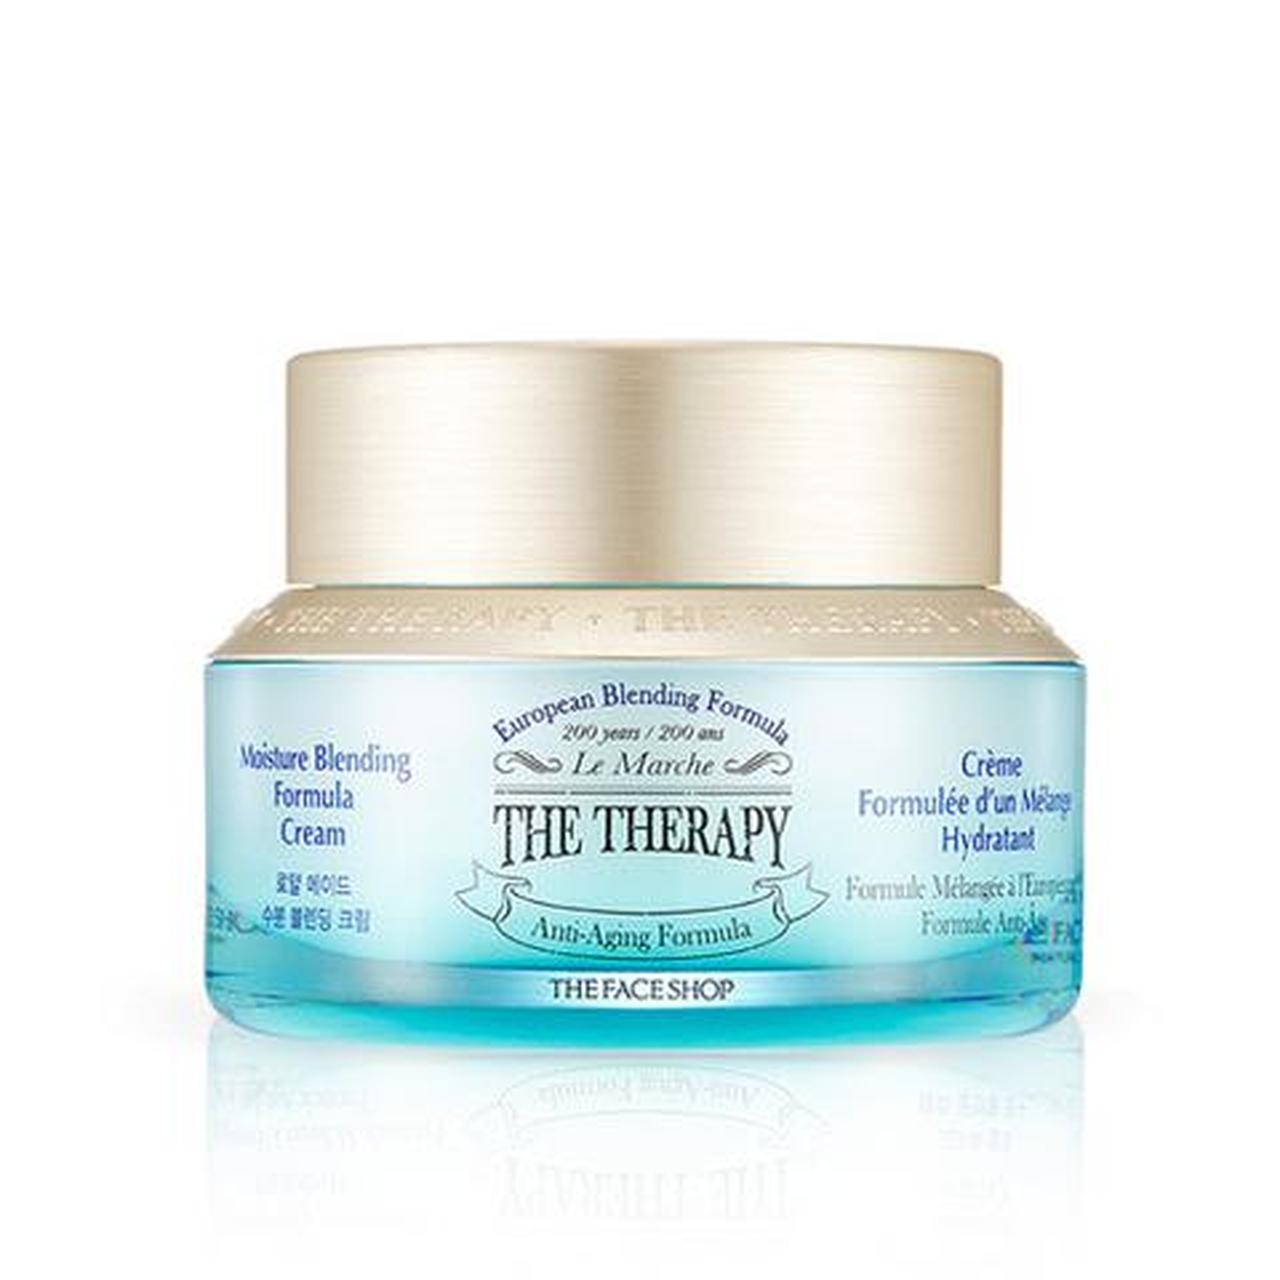 THEFACESHOP (THE FACE SHOP) THE THERAPY Moisture Blending Formula Cream Korean Skincare Cosmetics Montreal Toronto Canada thekshop